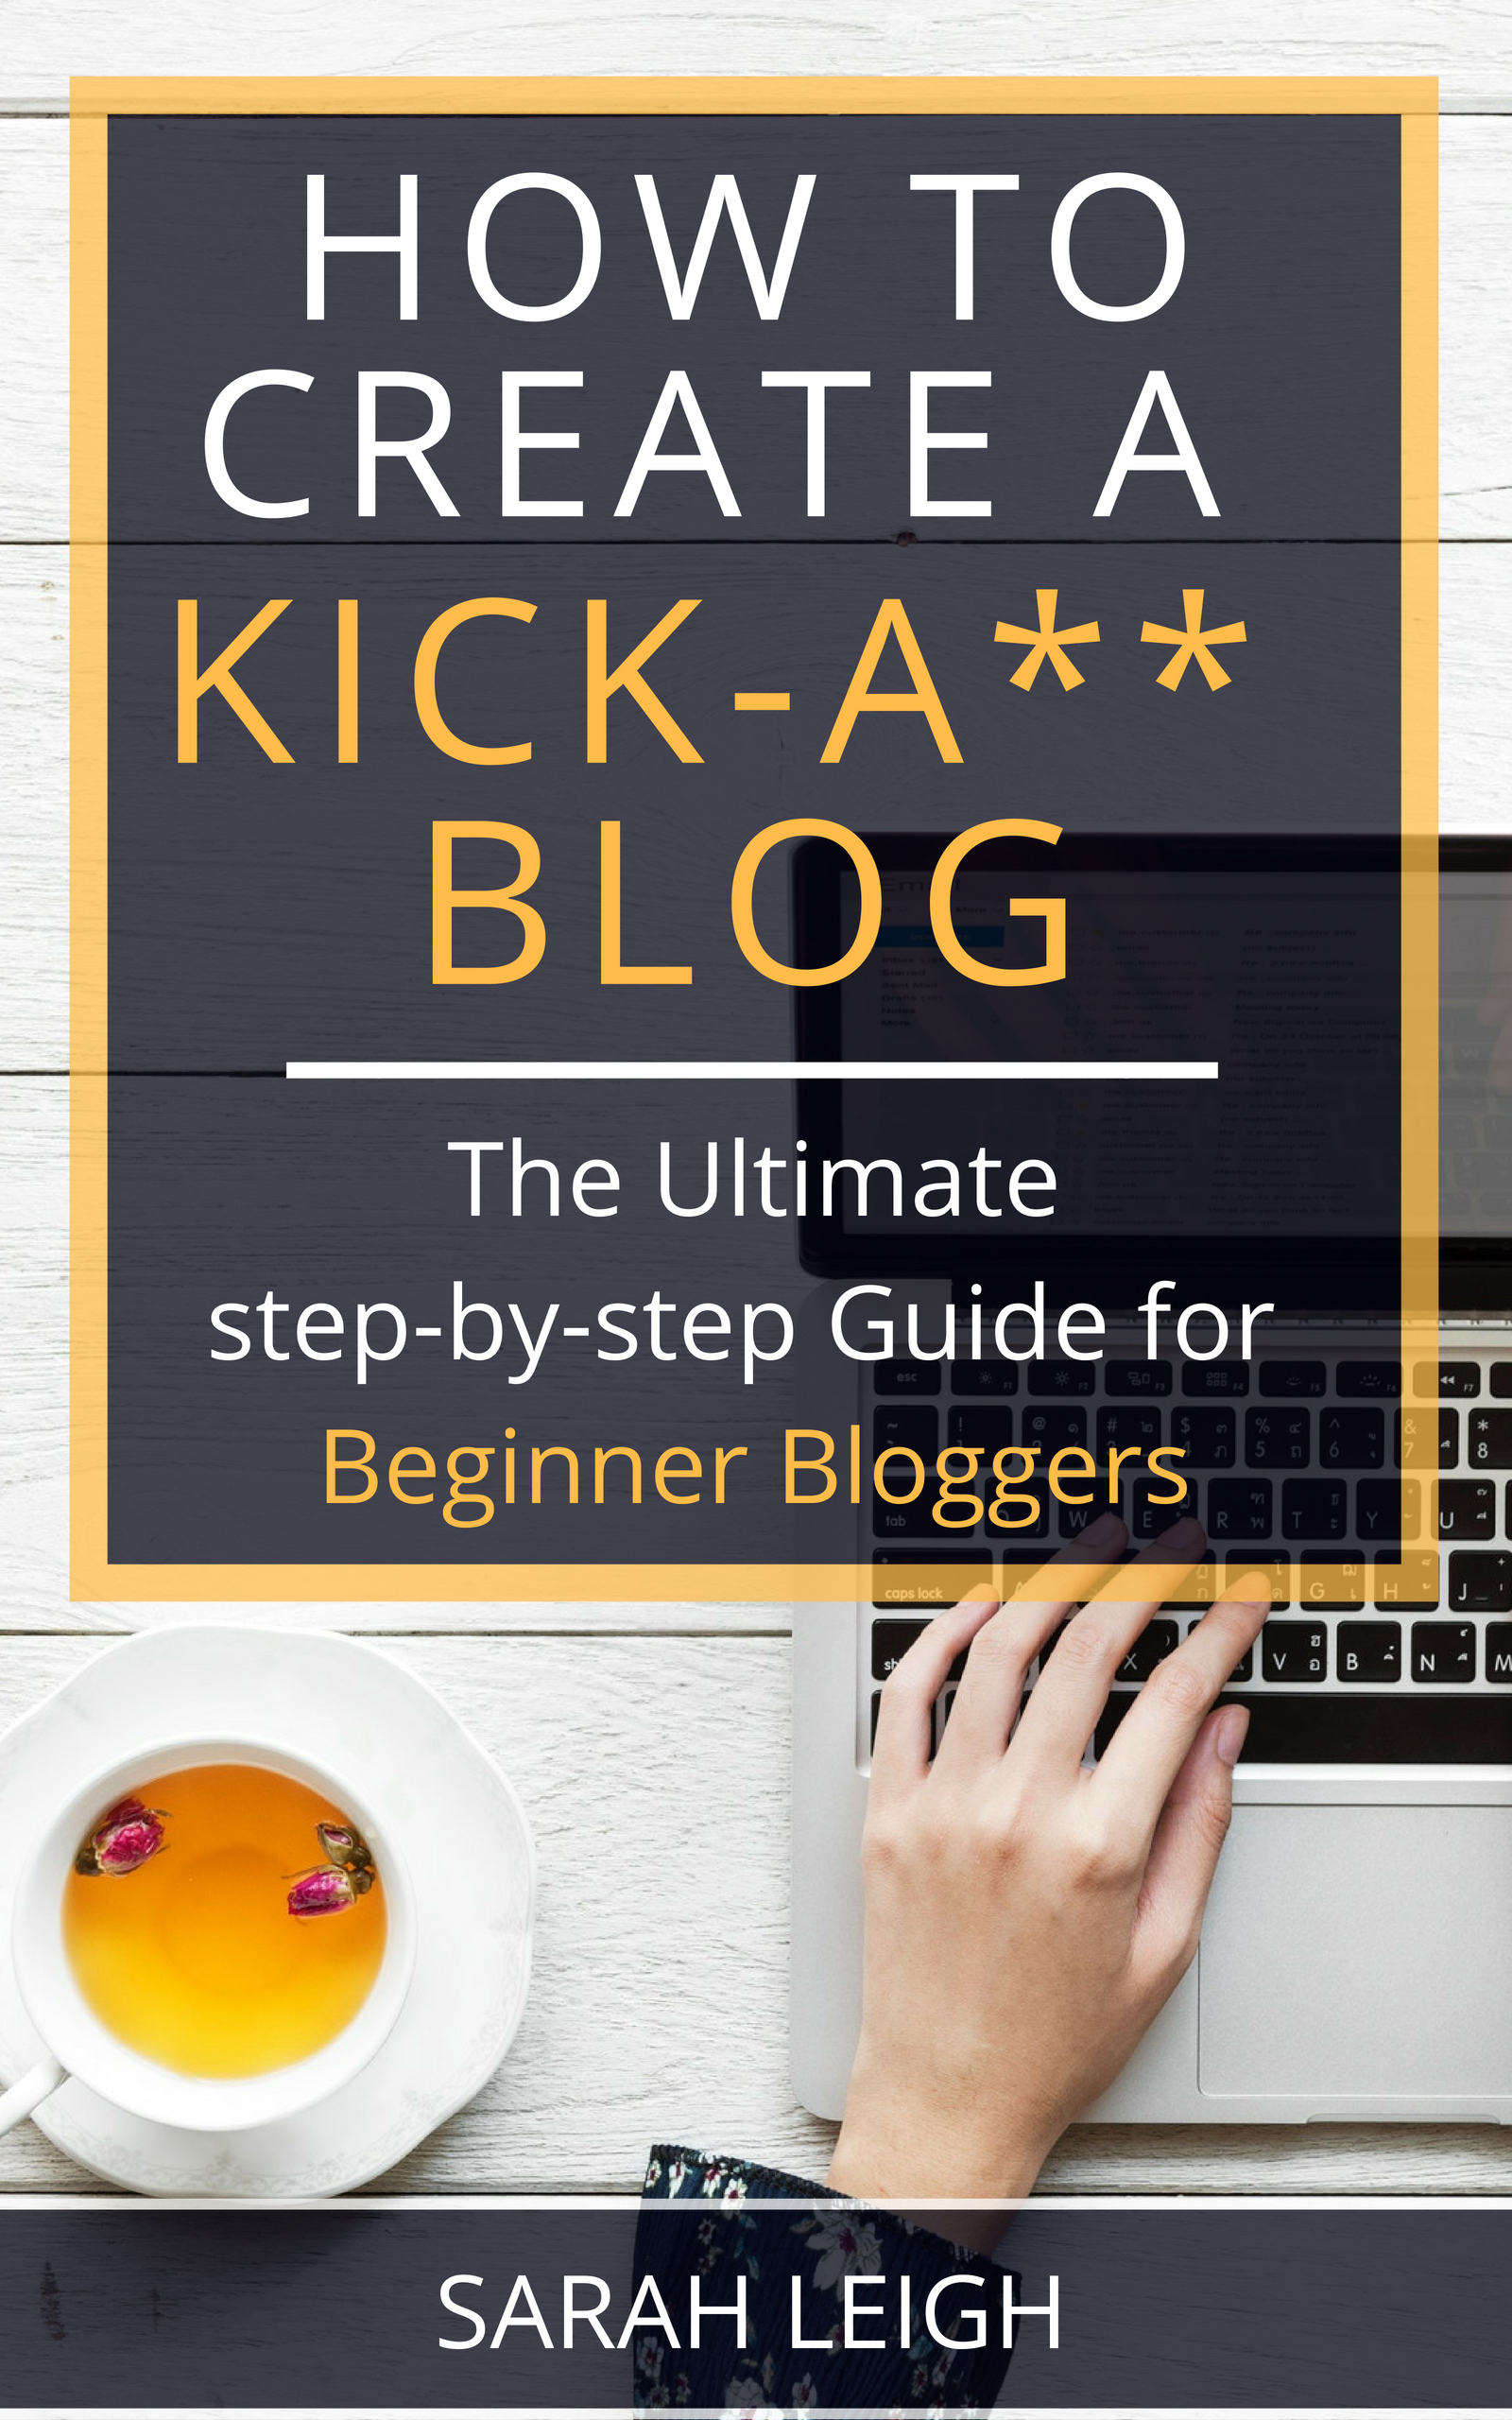 how to create a kick-ass blog